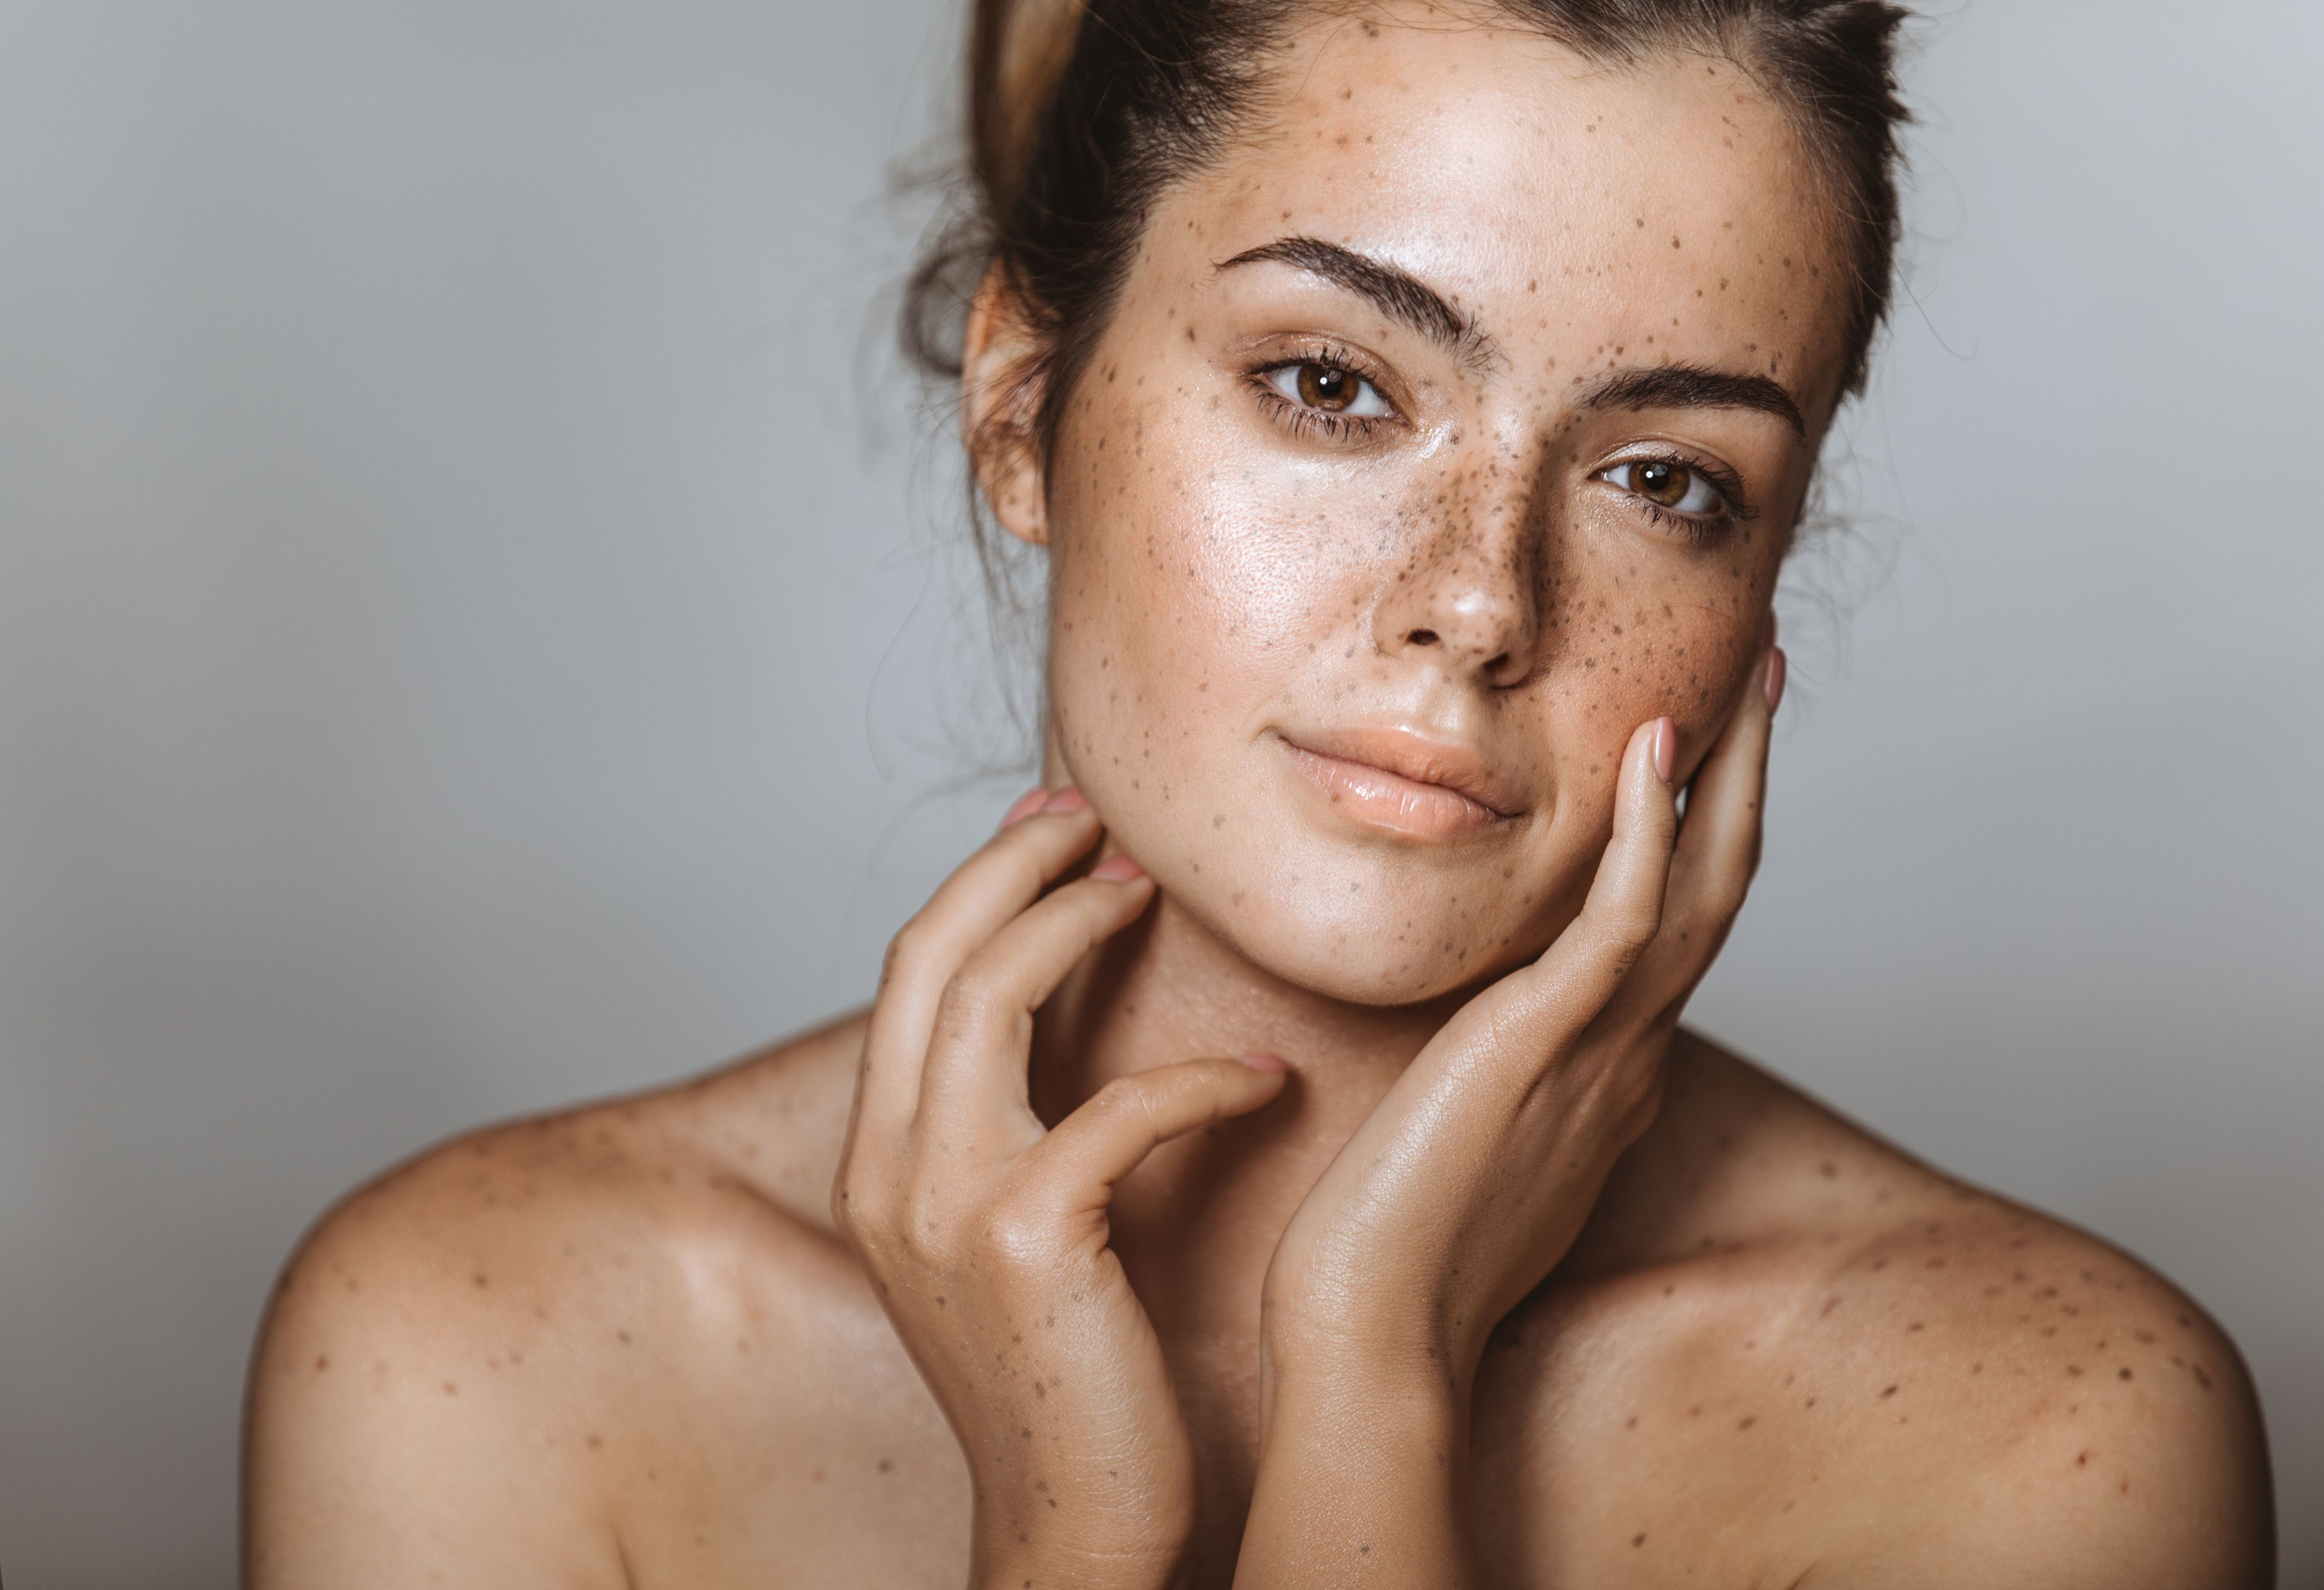 8 Best Hyaluronic Acid Products 2018 - Serums, Moisturizers